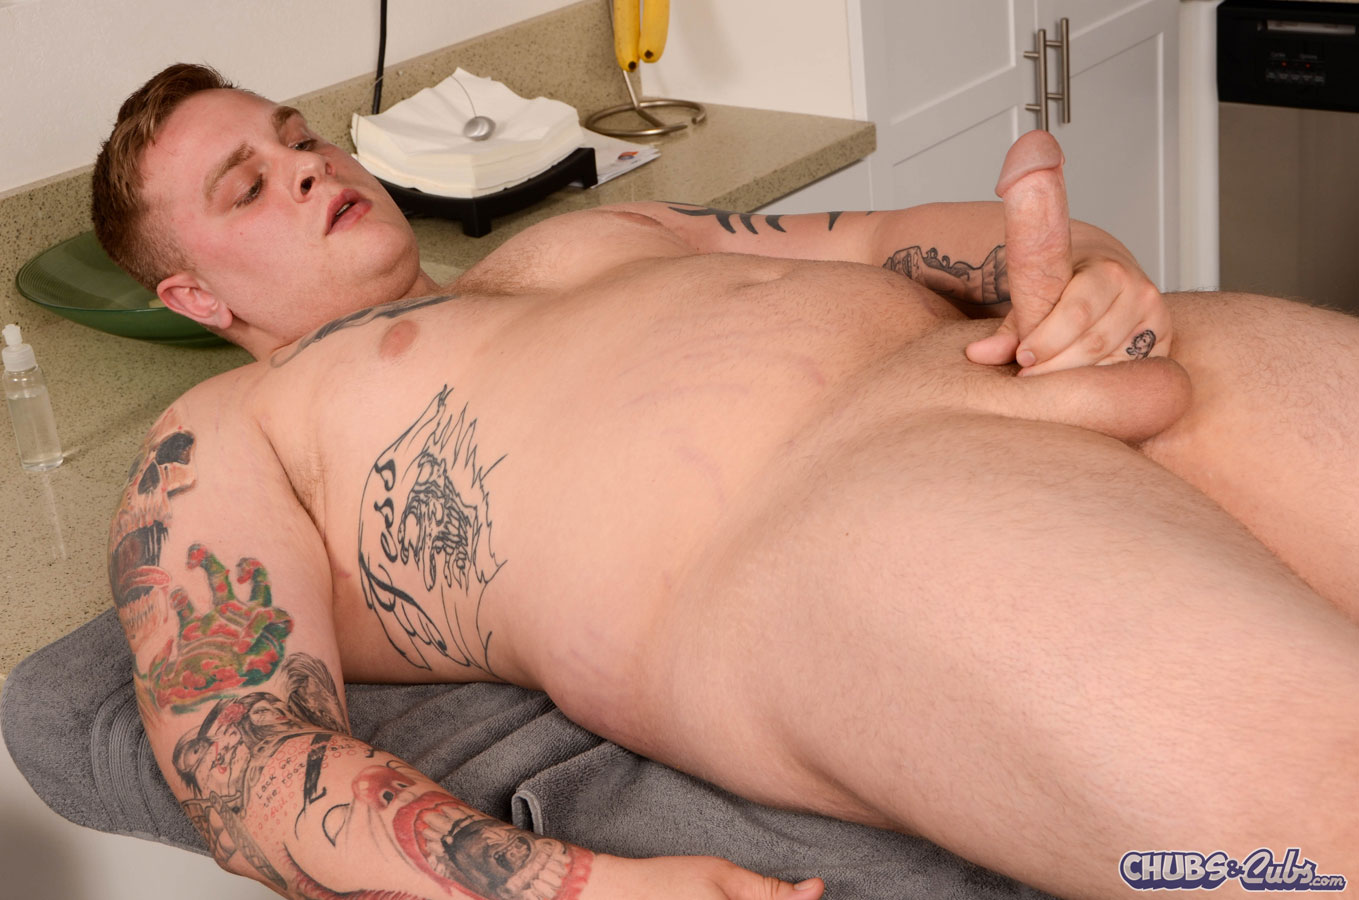 Chubby gay boy sex photos first time a